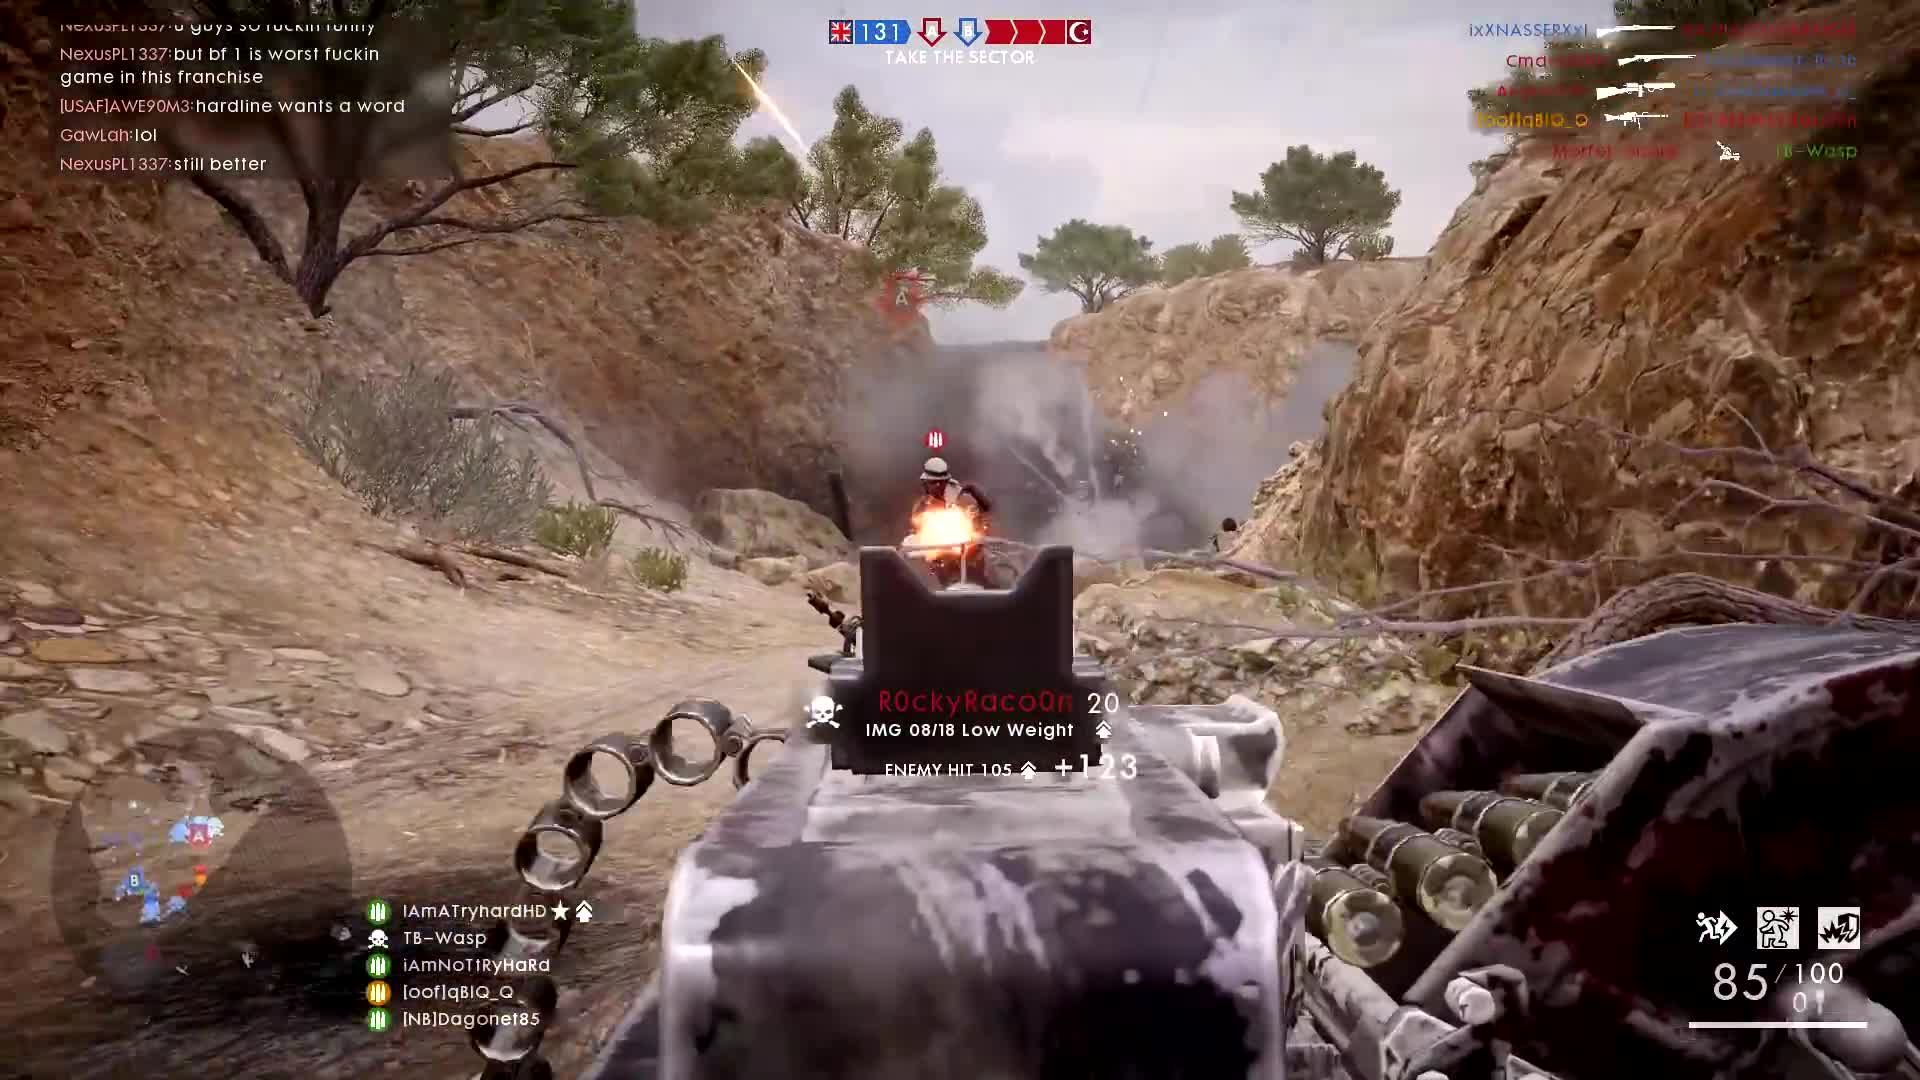 AKA-ART, Battlefield Rambo, Battlefield Rambo - Battlefield Top Plays, battlefield clips, battlefield top plays, battlefield top plays of the week, bf1 top plays, bf4 rambo, bf4 top plays, bf5 top plays, Battlefield Rambo - Battlefield Top Plays GIFs